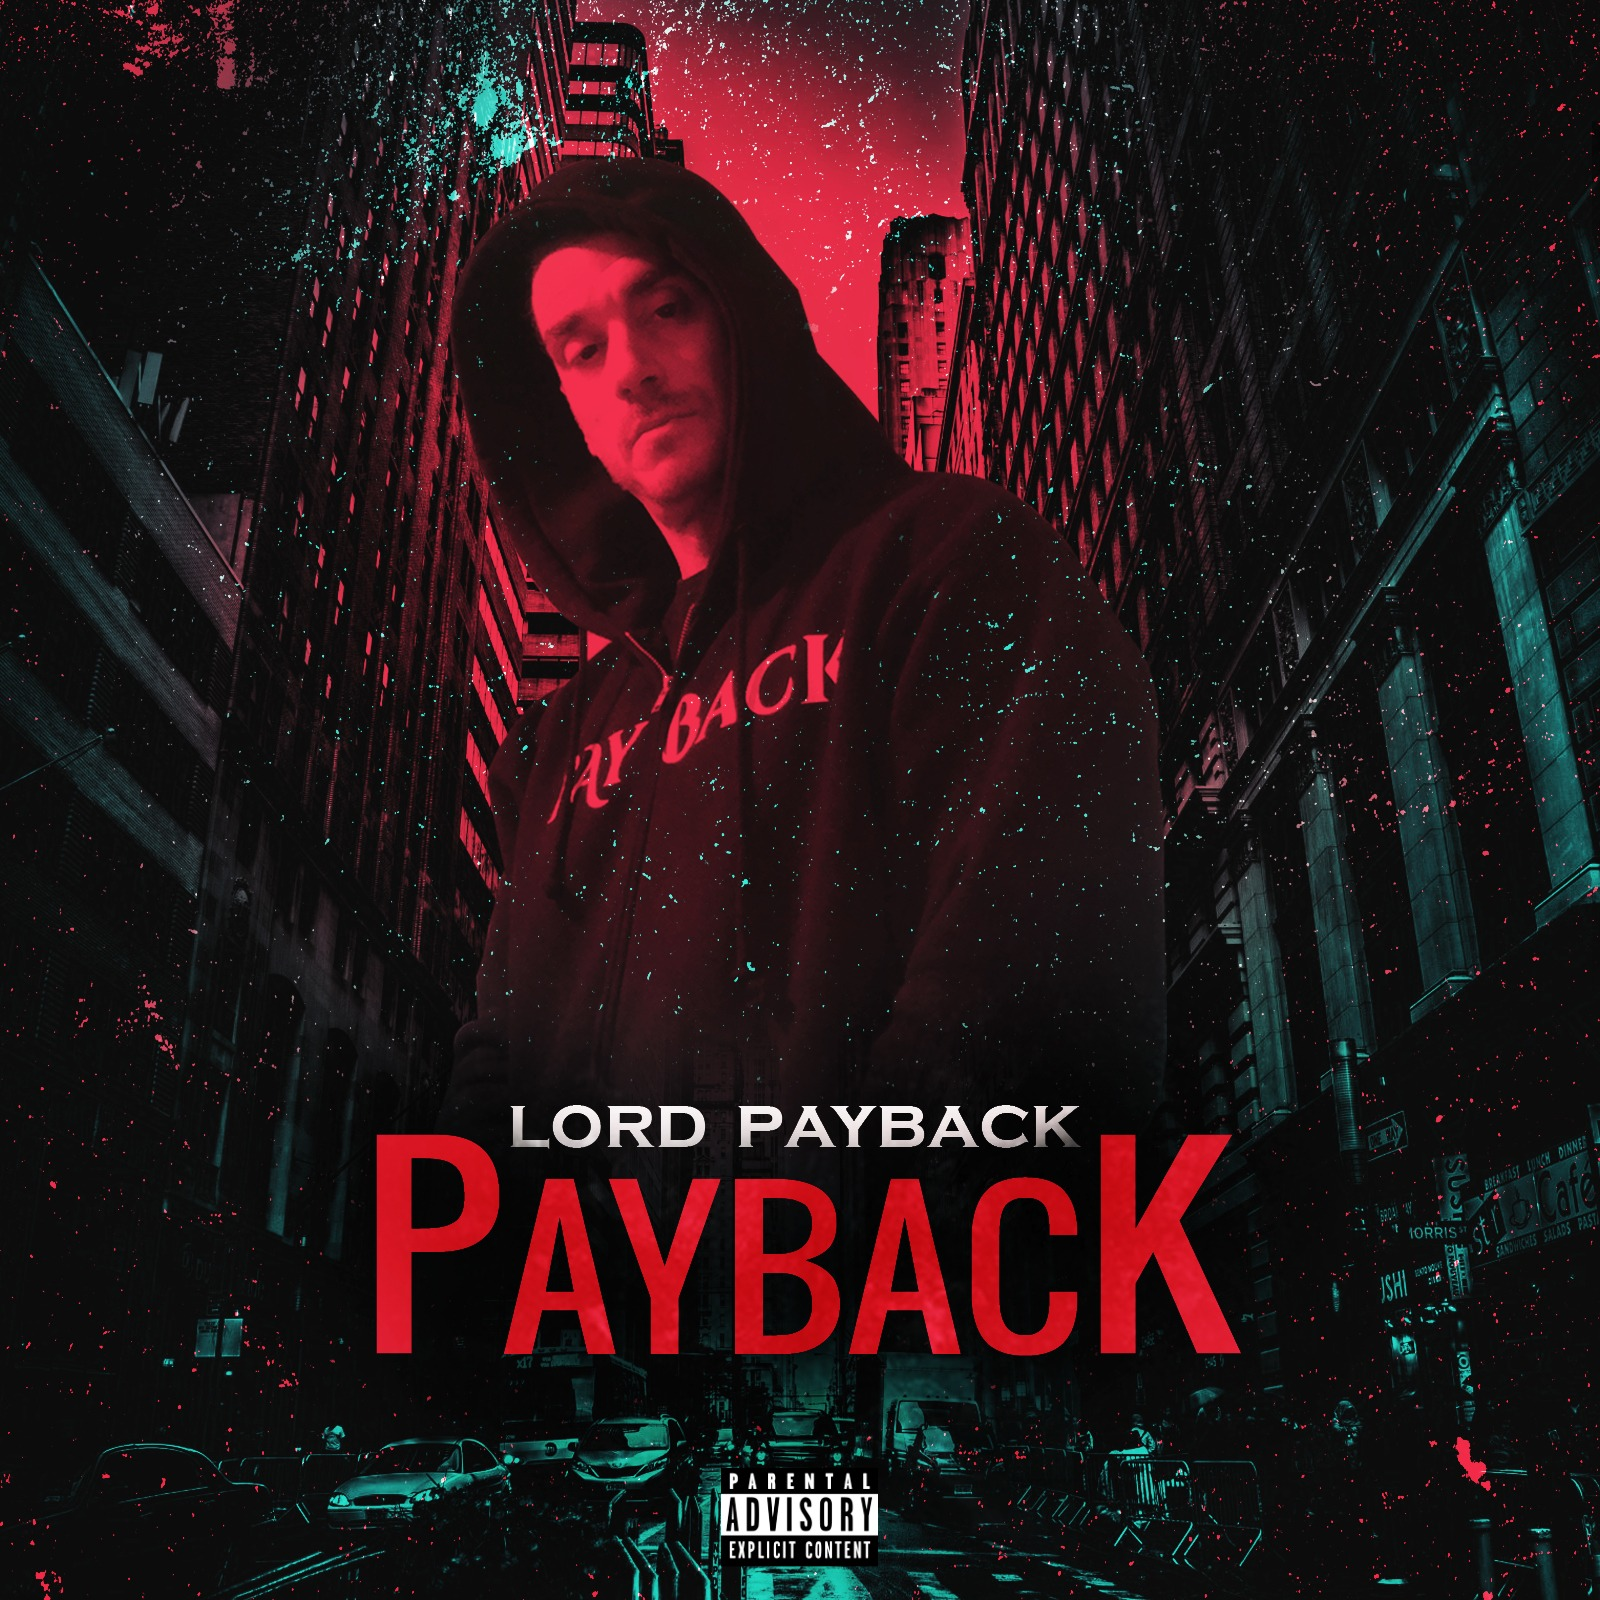 Lord Payback